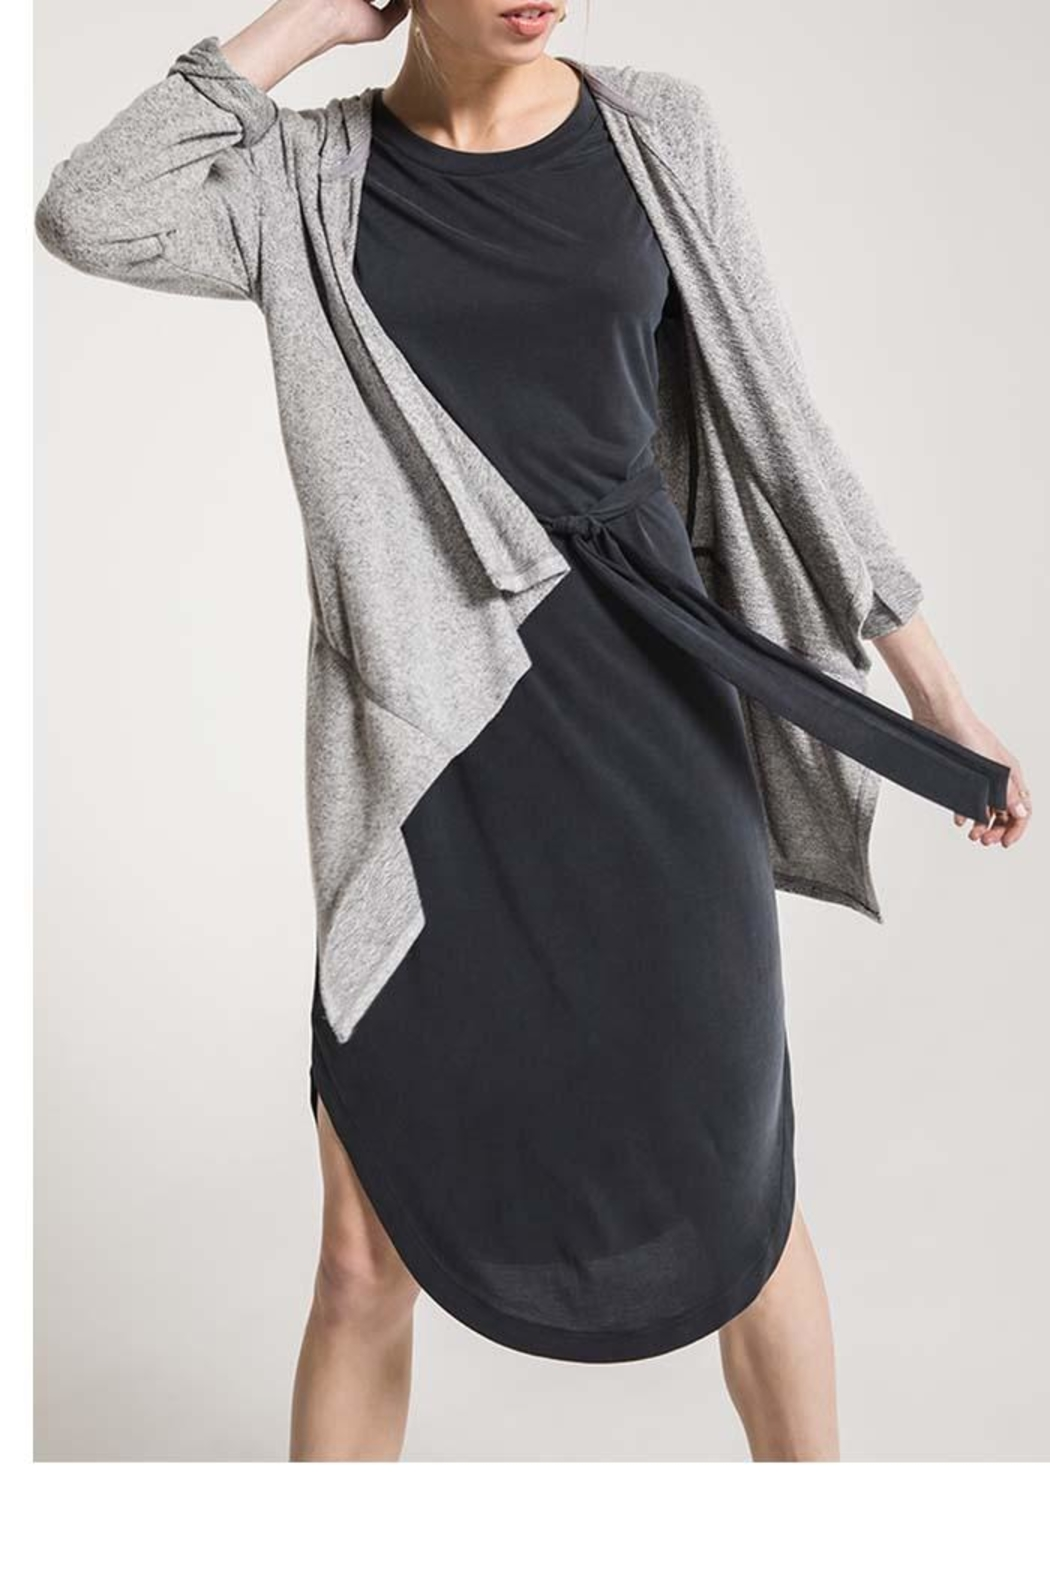 z supply Marled Hooded Cardigan - Front Full Image